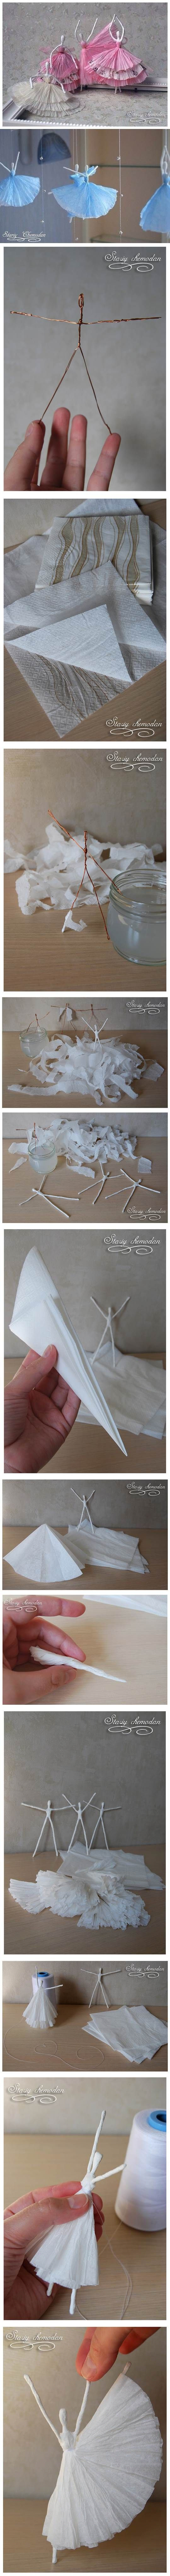 DIY Napkin Paper Ballerina 2 - taken from Stacey Chemodan's blog.  Charming ballerinas from wire and paper napkins.